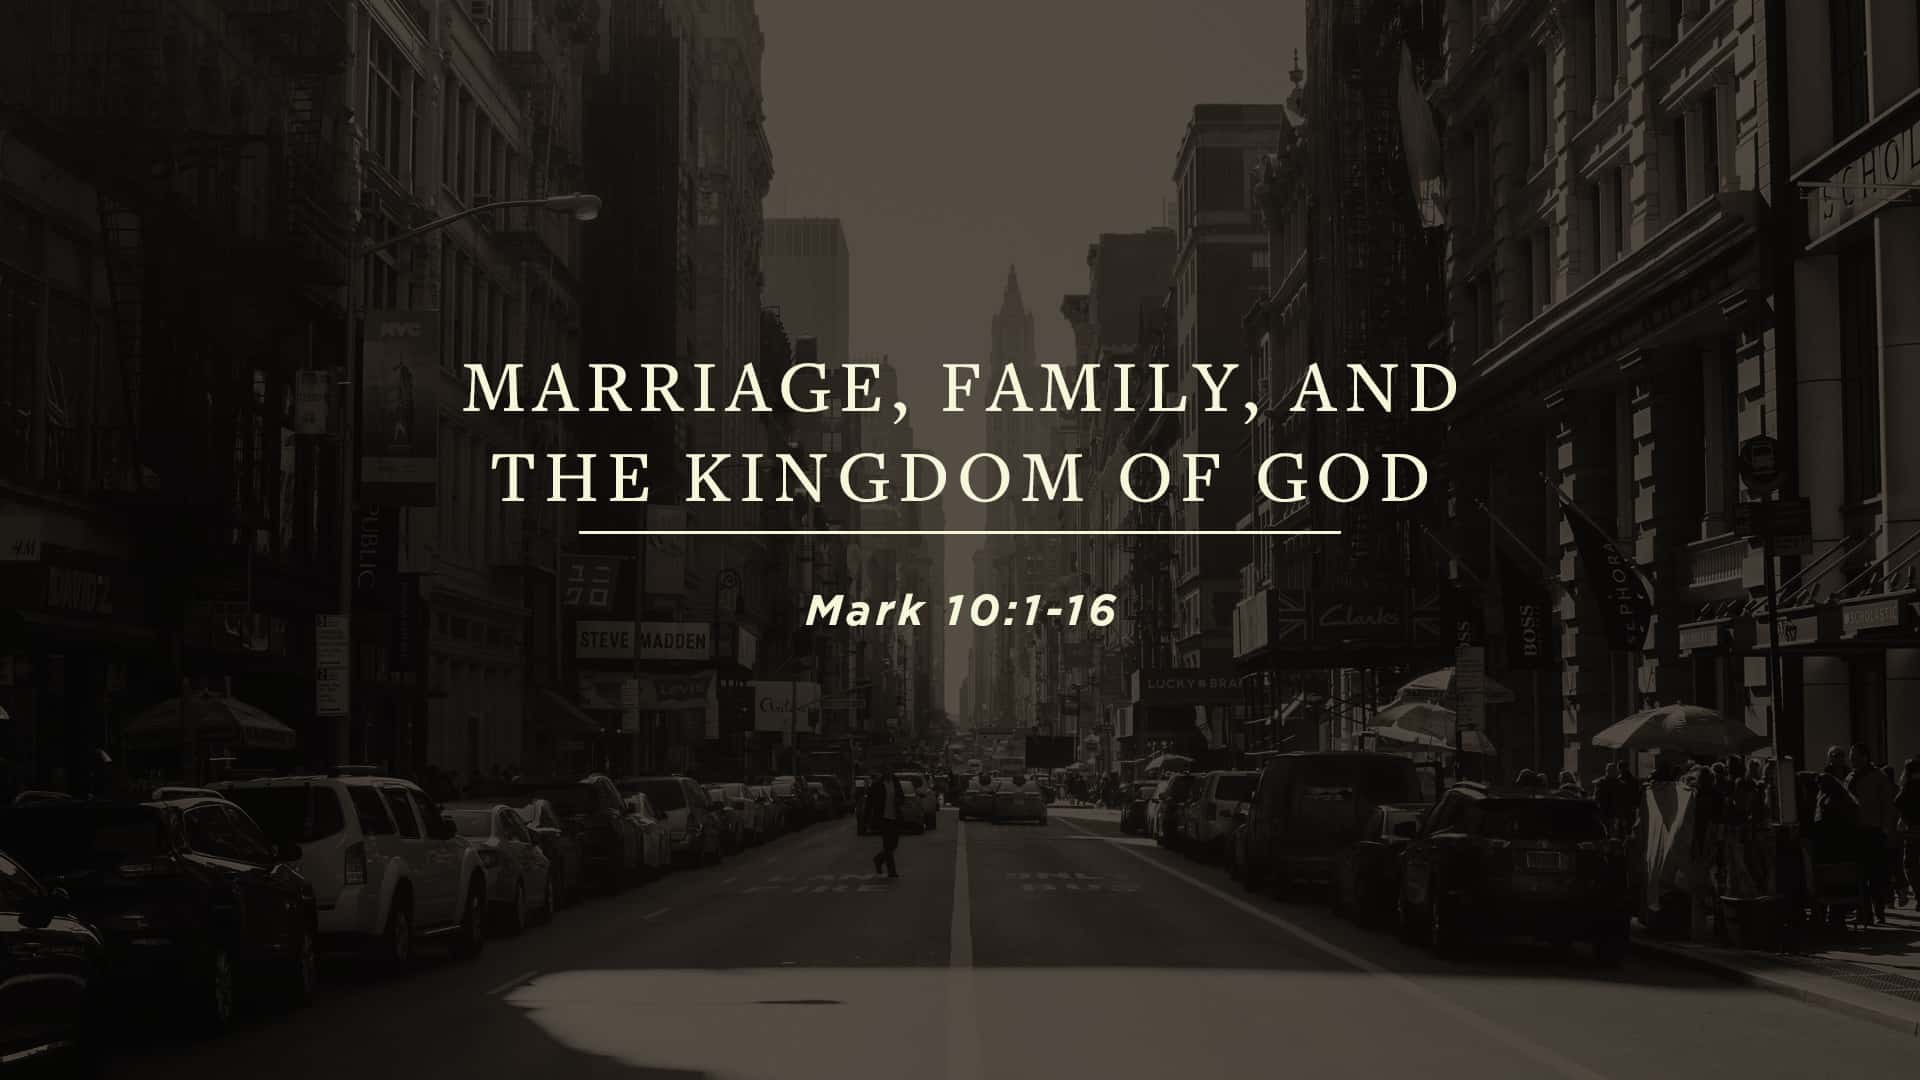 Marriage, Family, and the Kingdom of God